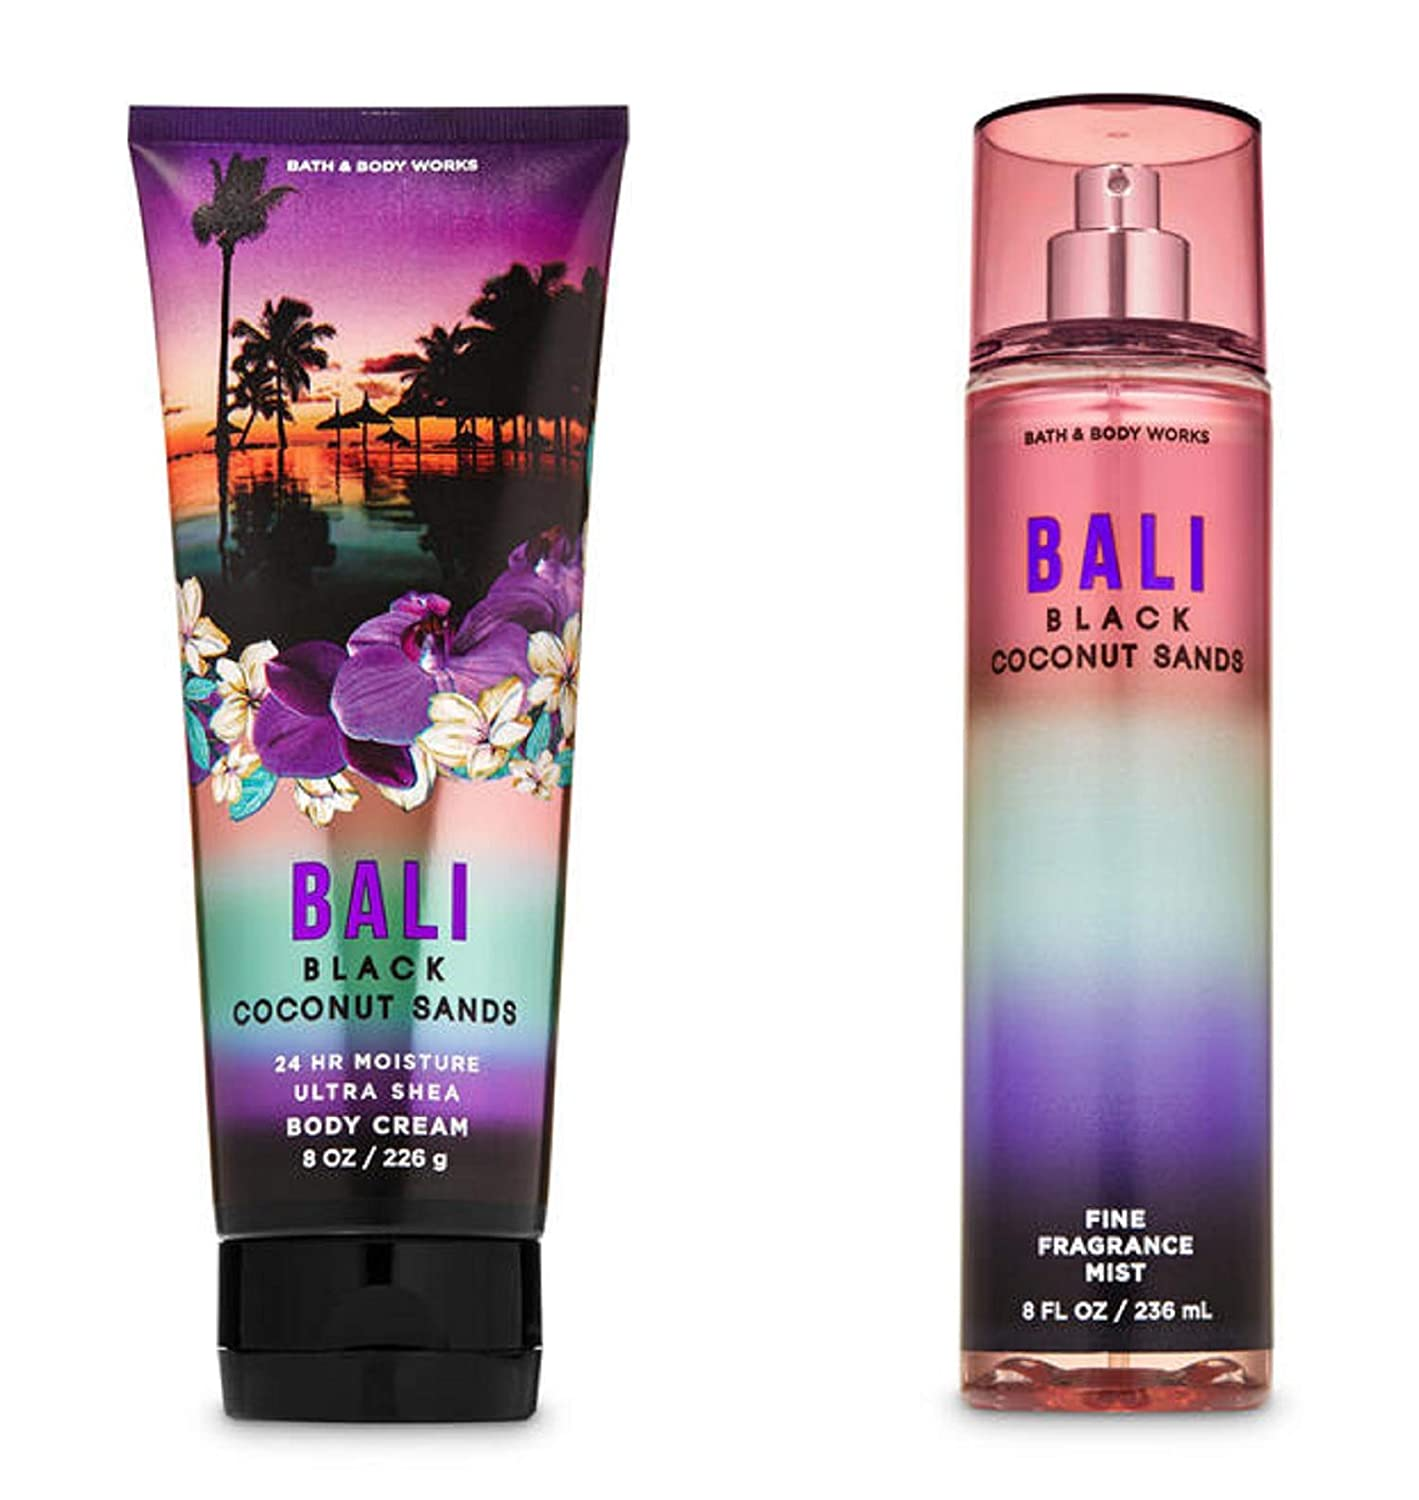 Bath and Outlet ☆ Free Shipping Body 40% OFF Cheap Sale Works Bali Black Duo Ultra Gift Set Coconut Sands